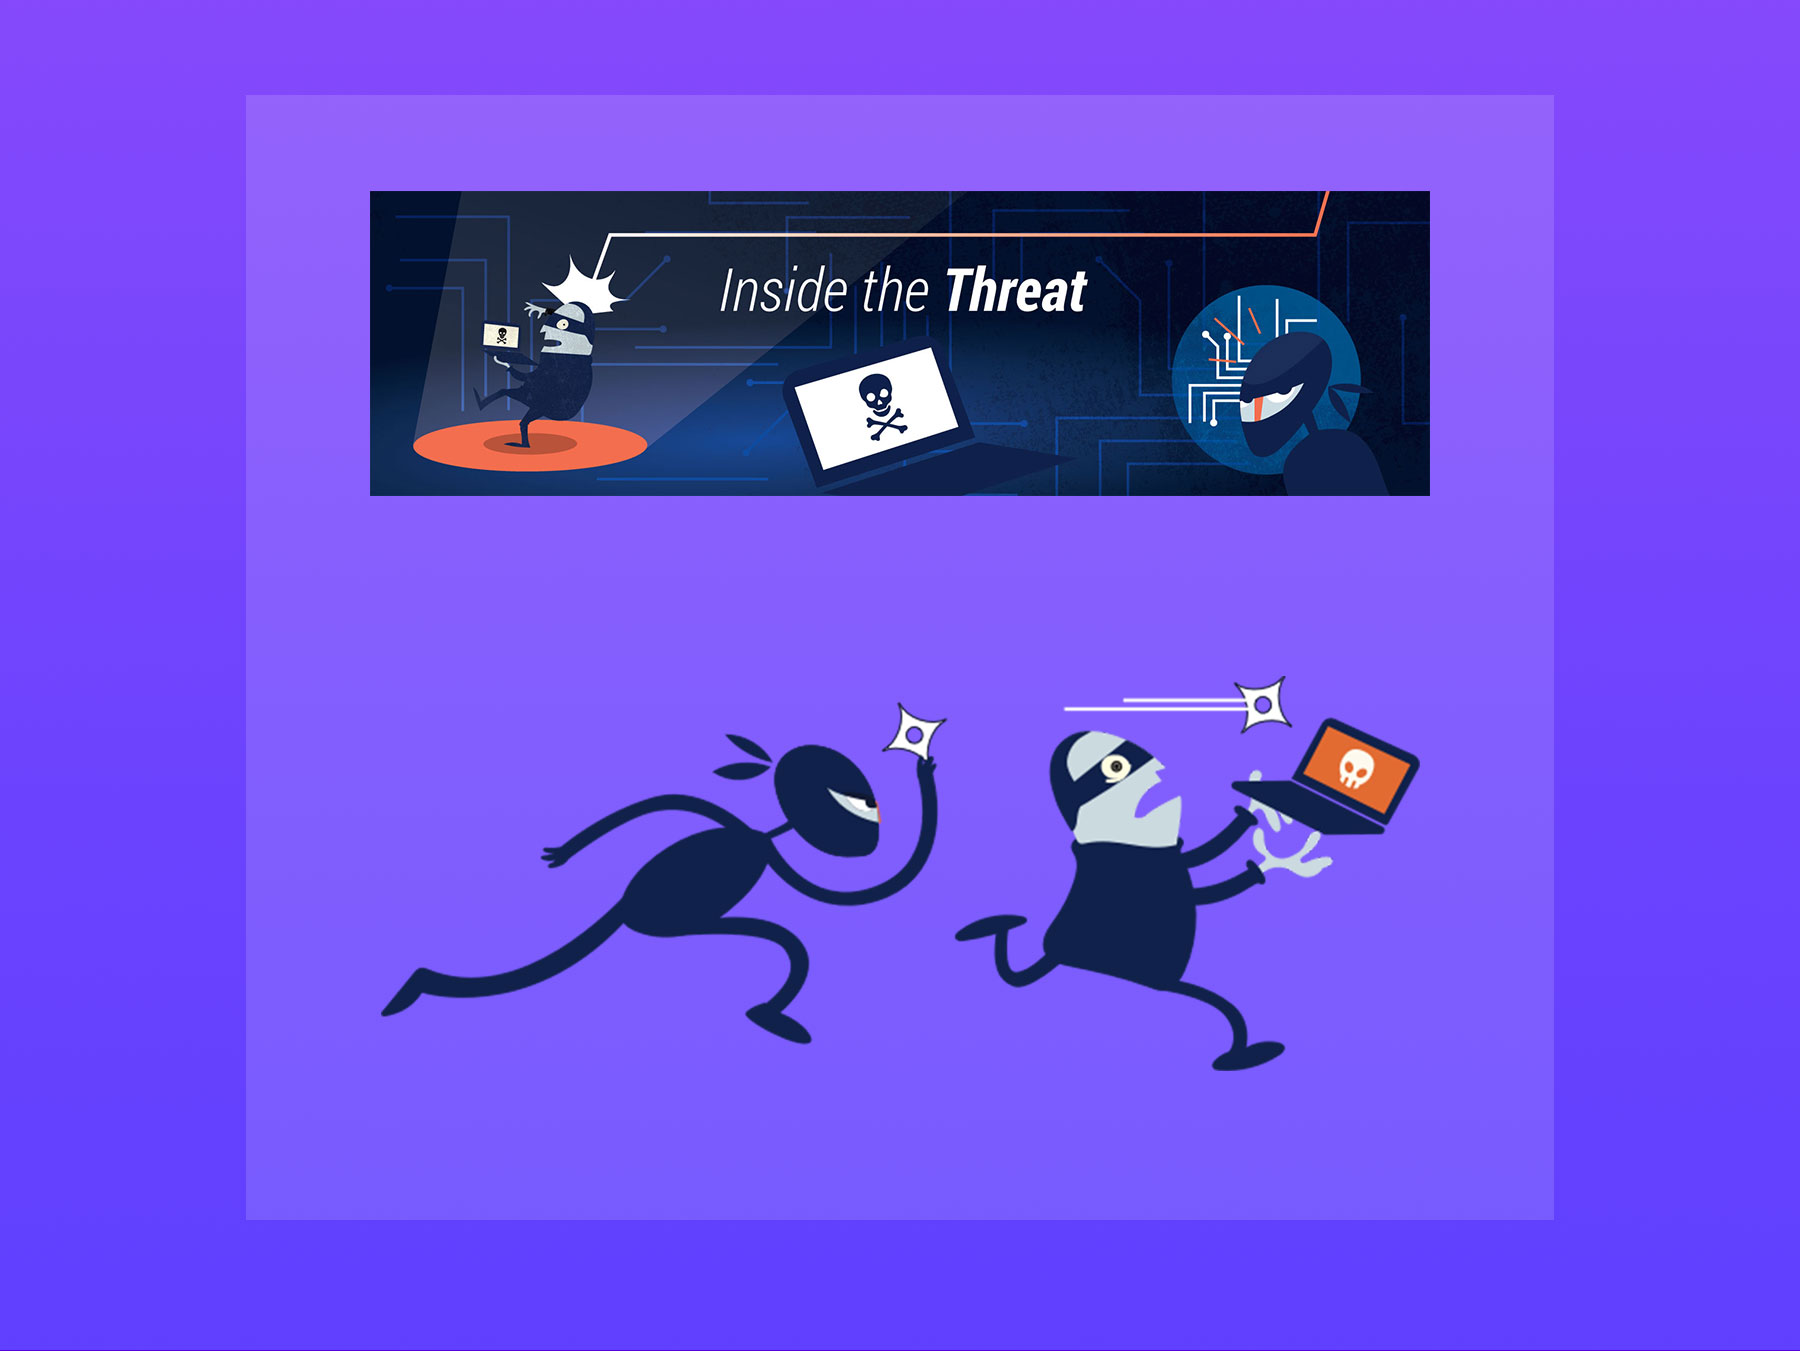 inside-the-threat_03.jpg